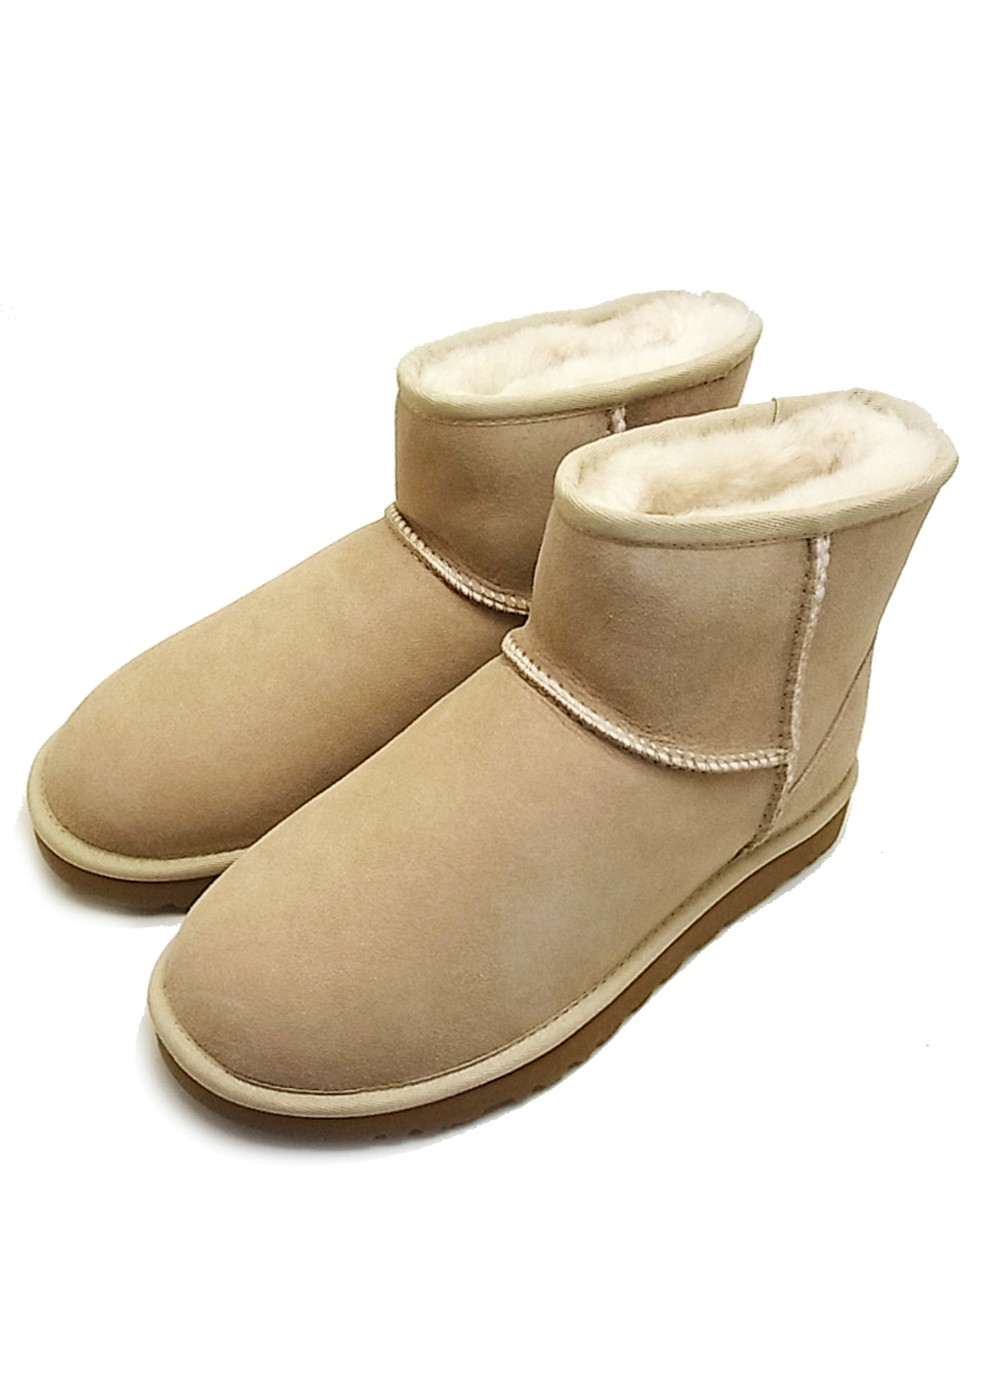 【SPECIAL-PRICE】CLASSIC MINI II|SAND|ブーツ|UGG(M)|最大30%OFF